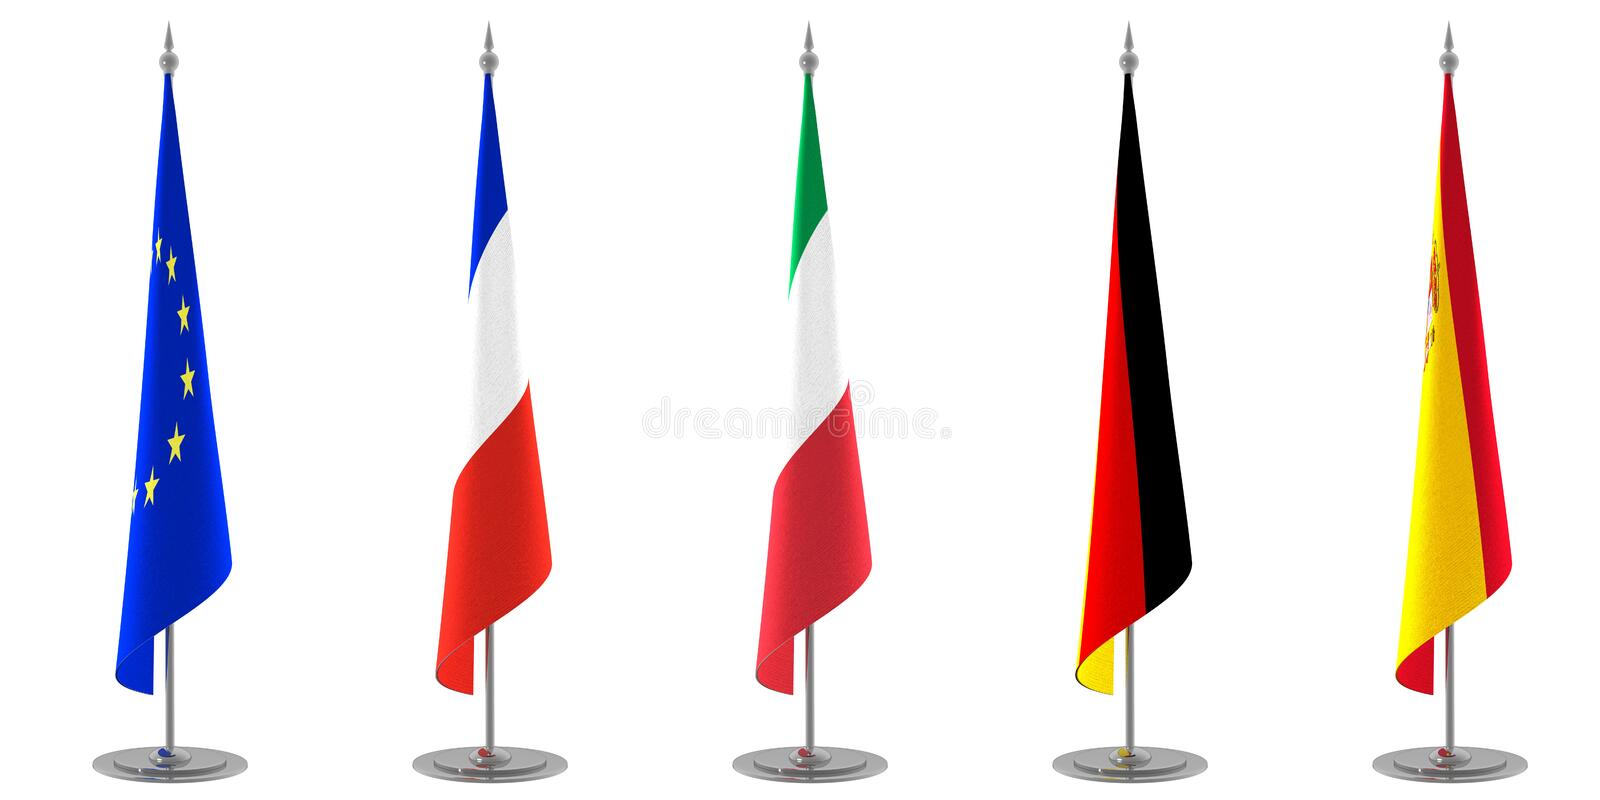 Table Flags Collection Europe royalty free stock photography